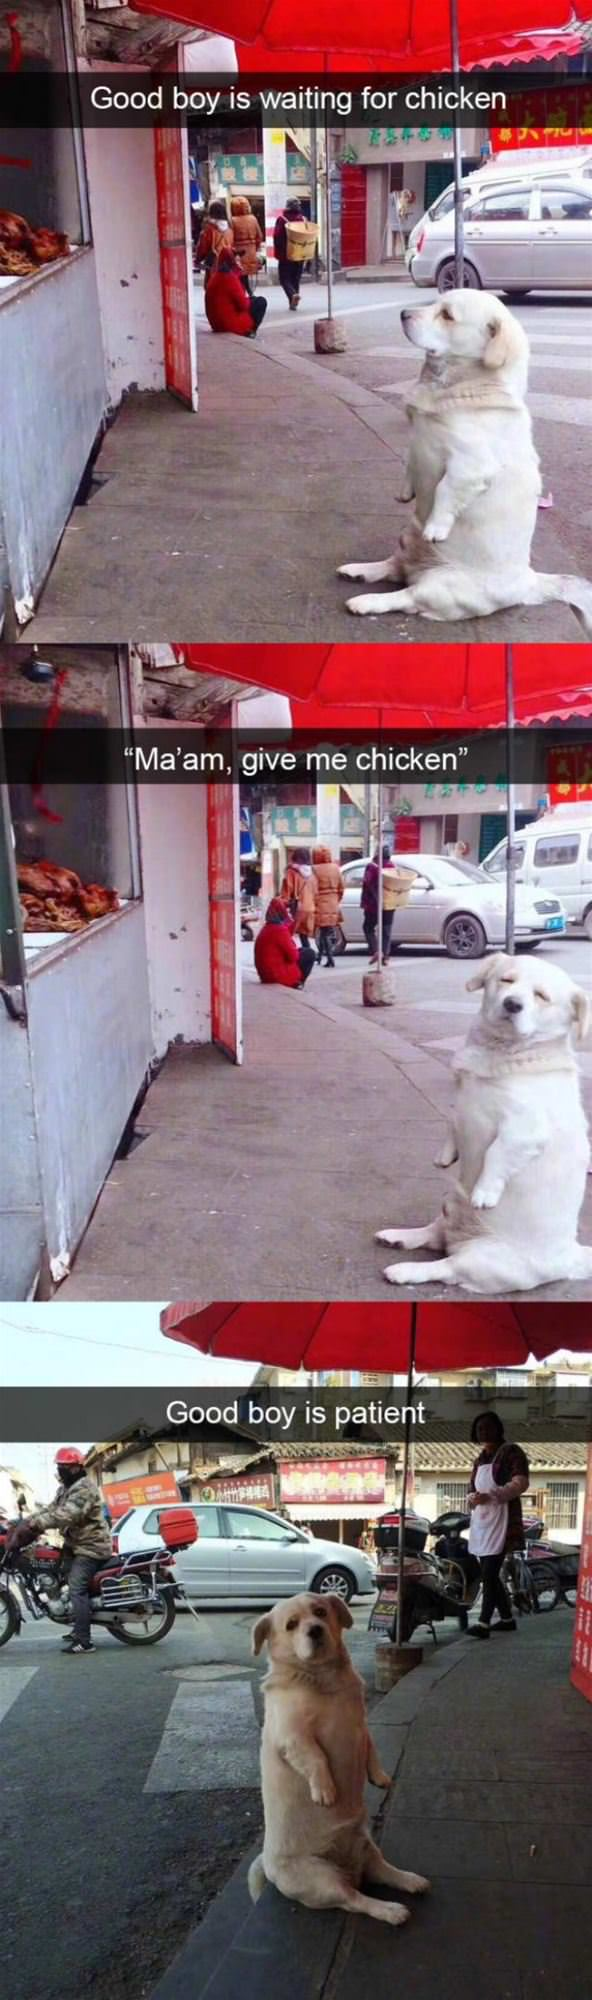 A Chicken Please